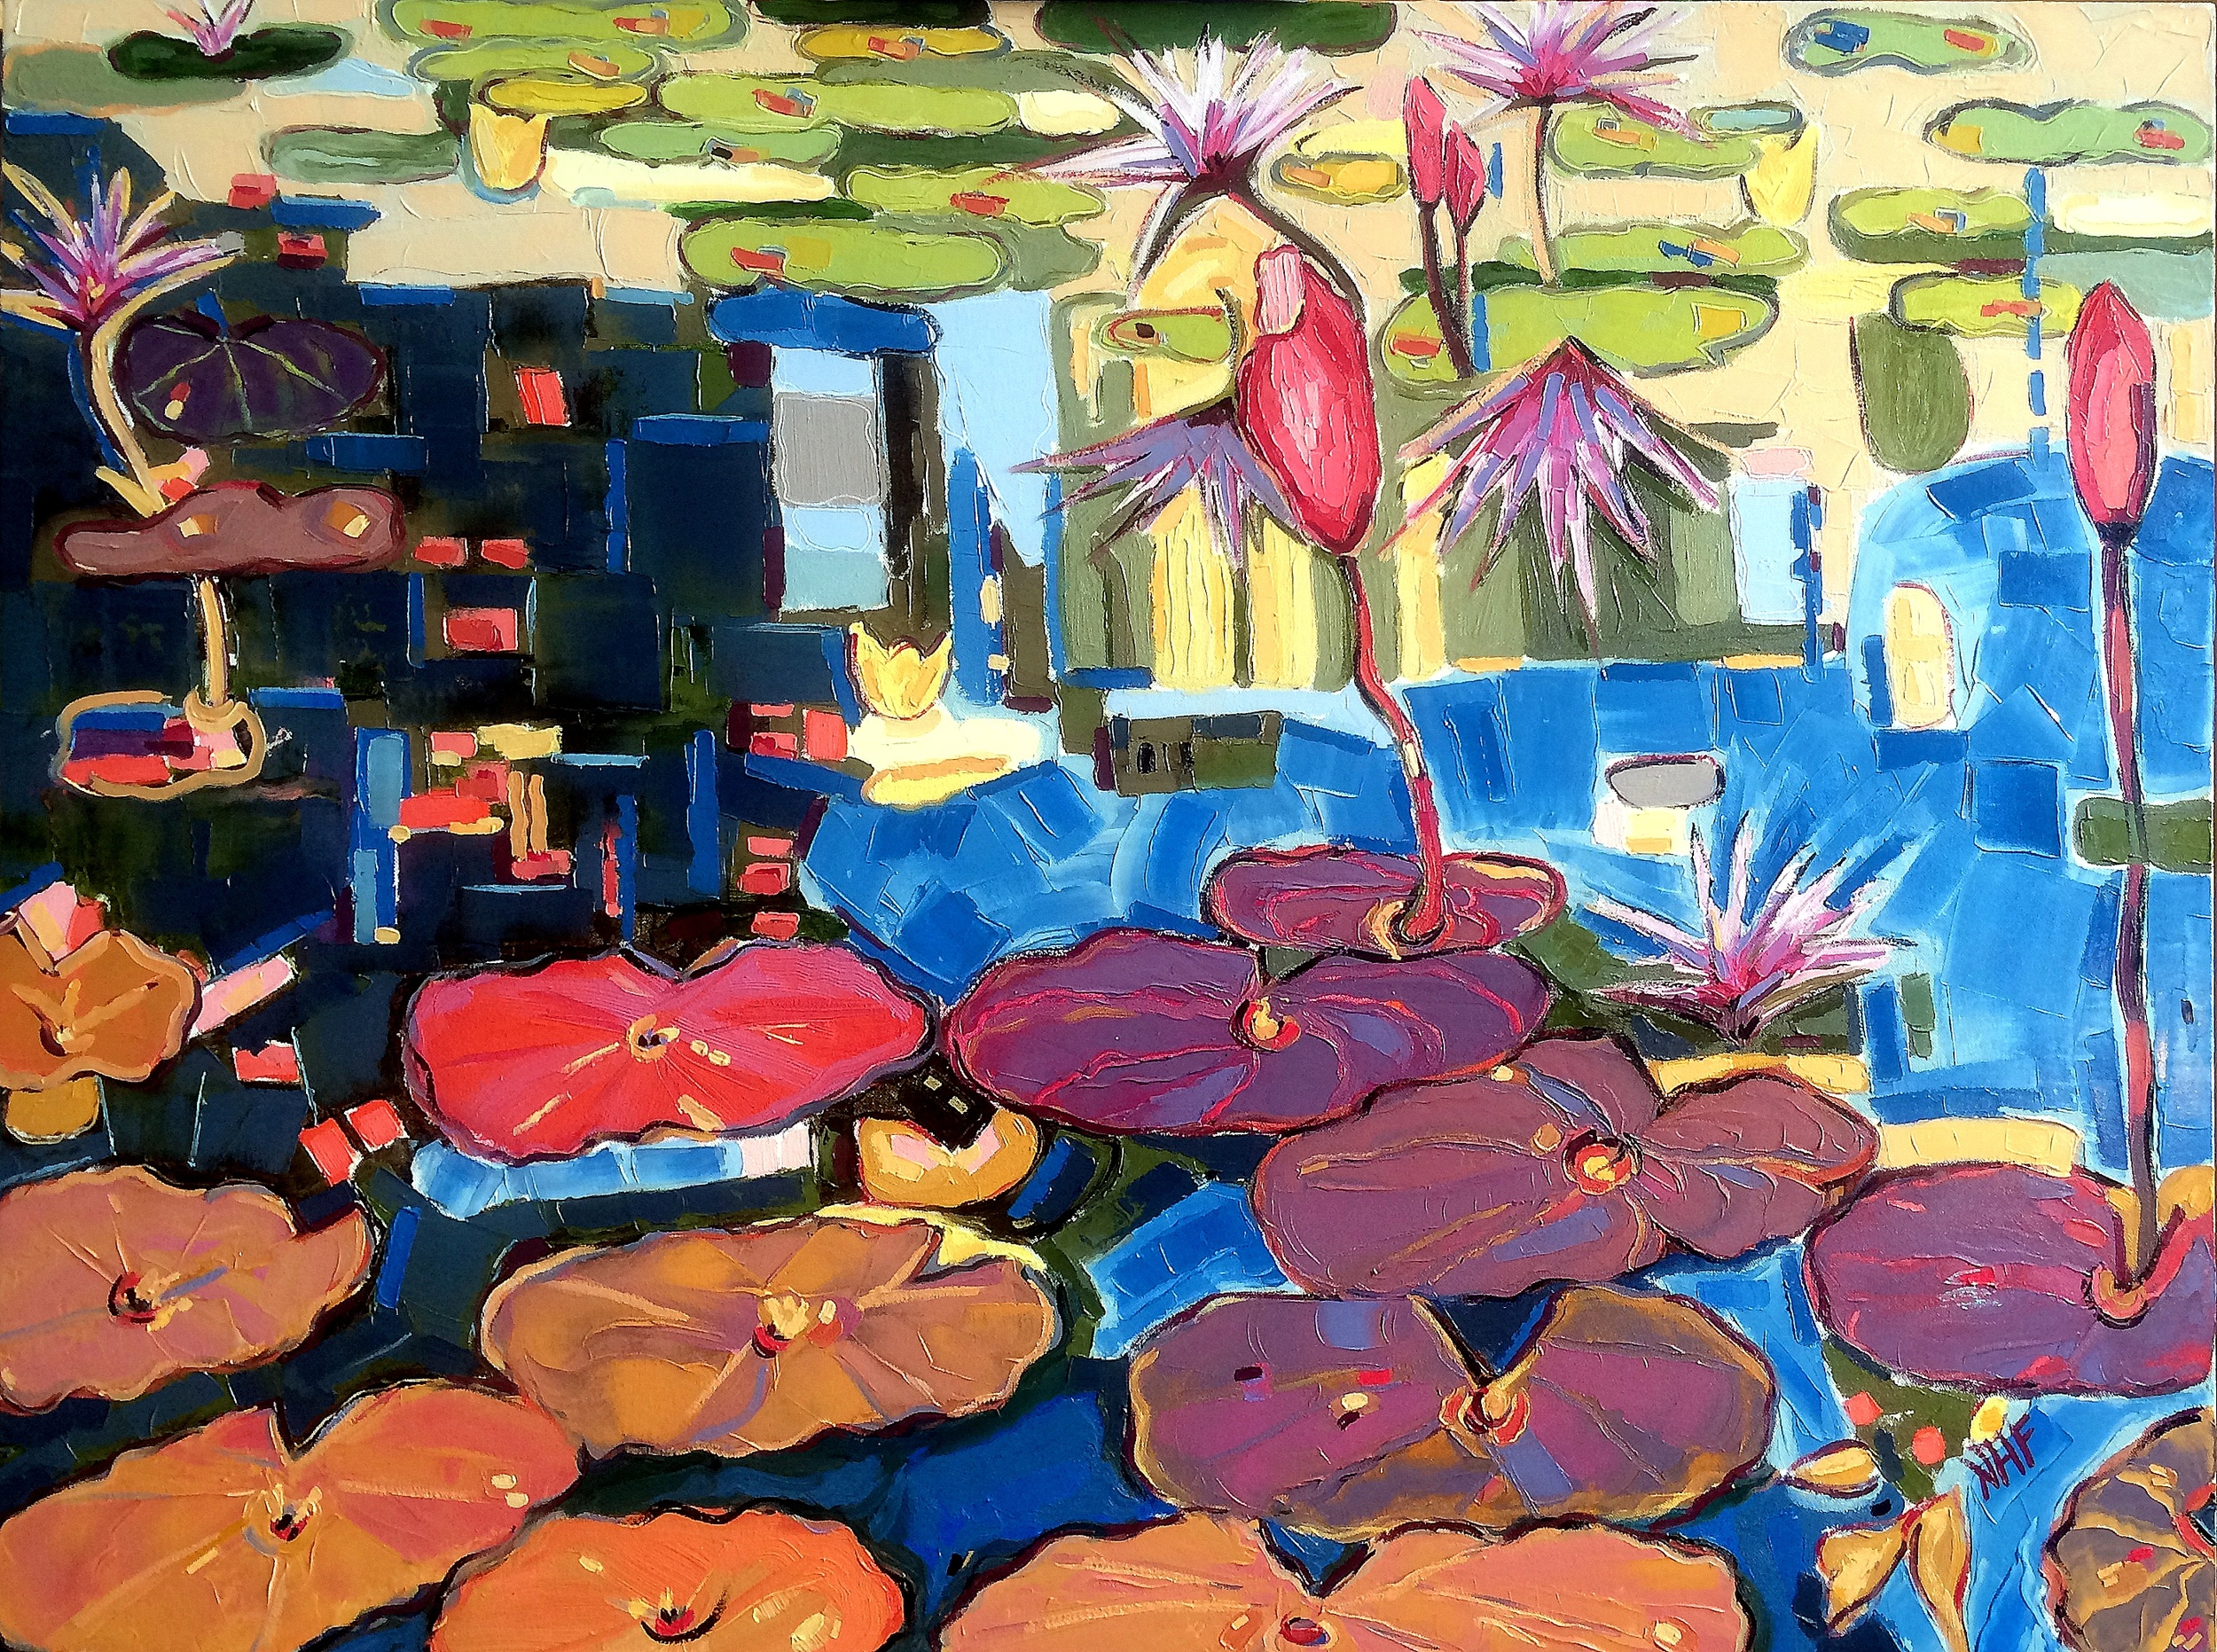 Into the Pond 5, oil on canvas, 36x48